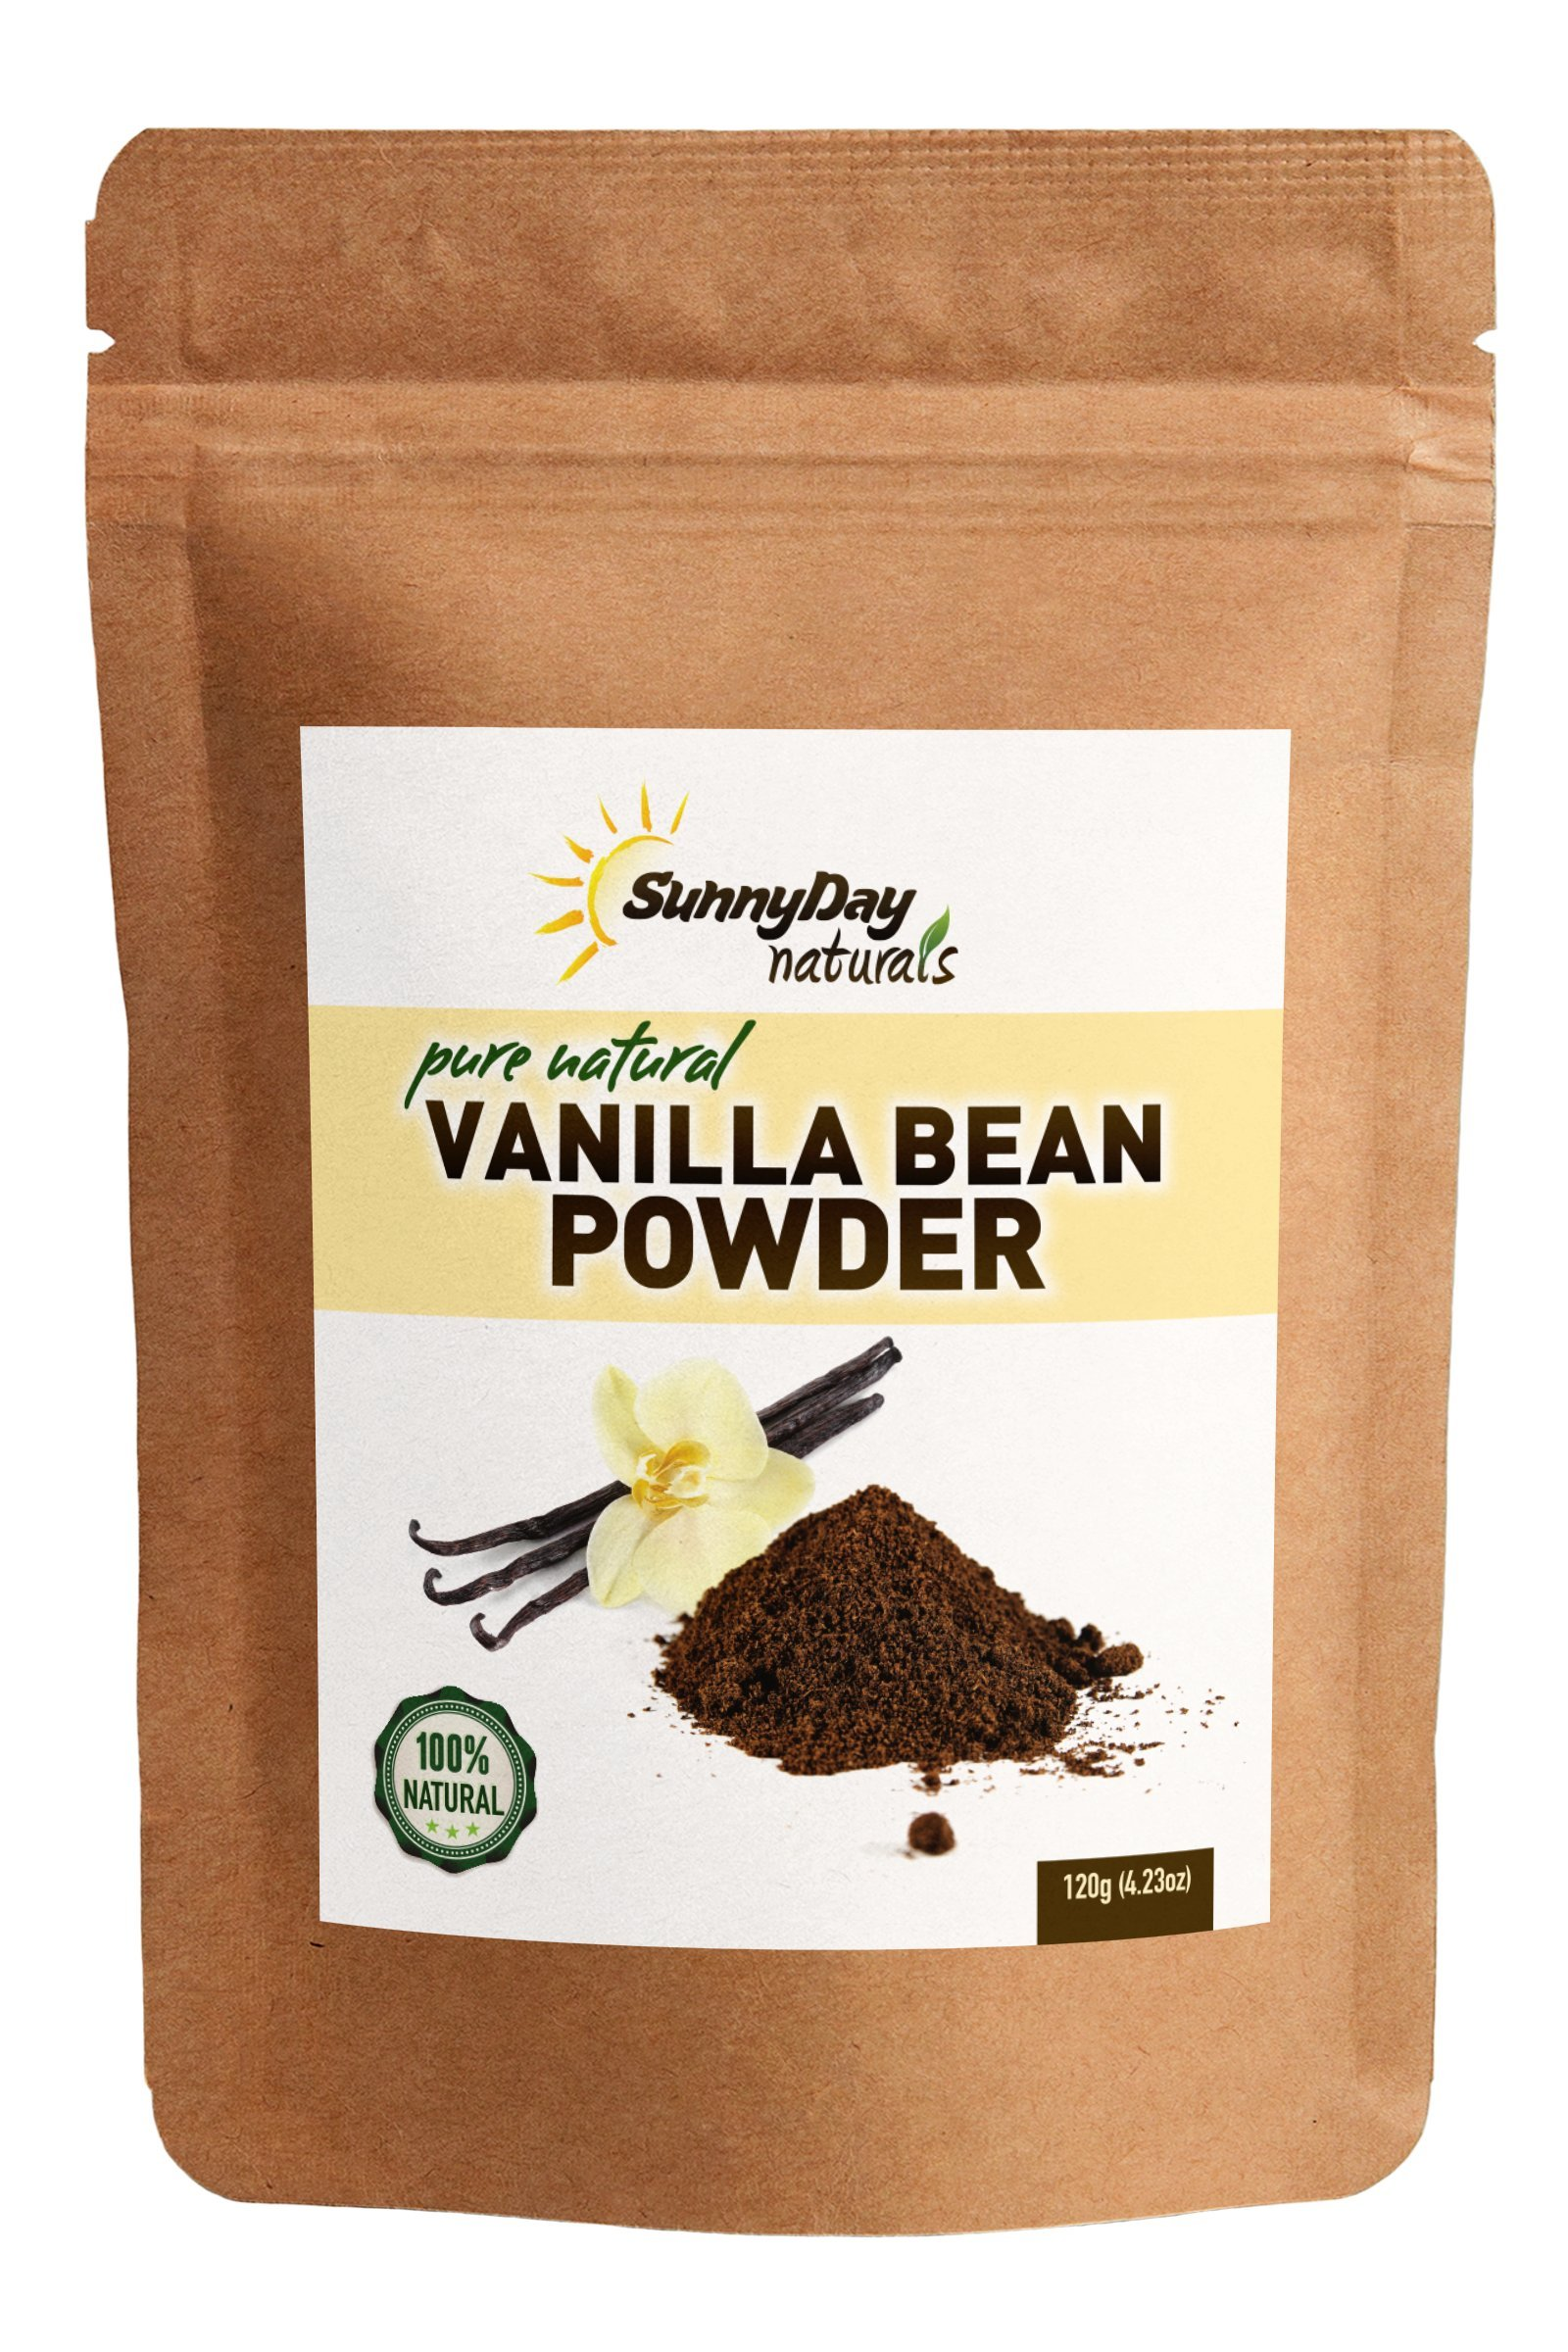 Naturally Grown Vanilla Bean Powder, 4.23 Oz - Raw Ground Vanilla Bean - Unsweetened, Gluten-Free - EXTREMELY FRESH - Ground Moments Before Packaging!